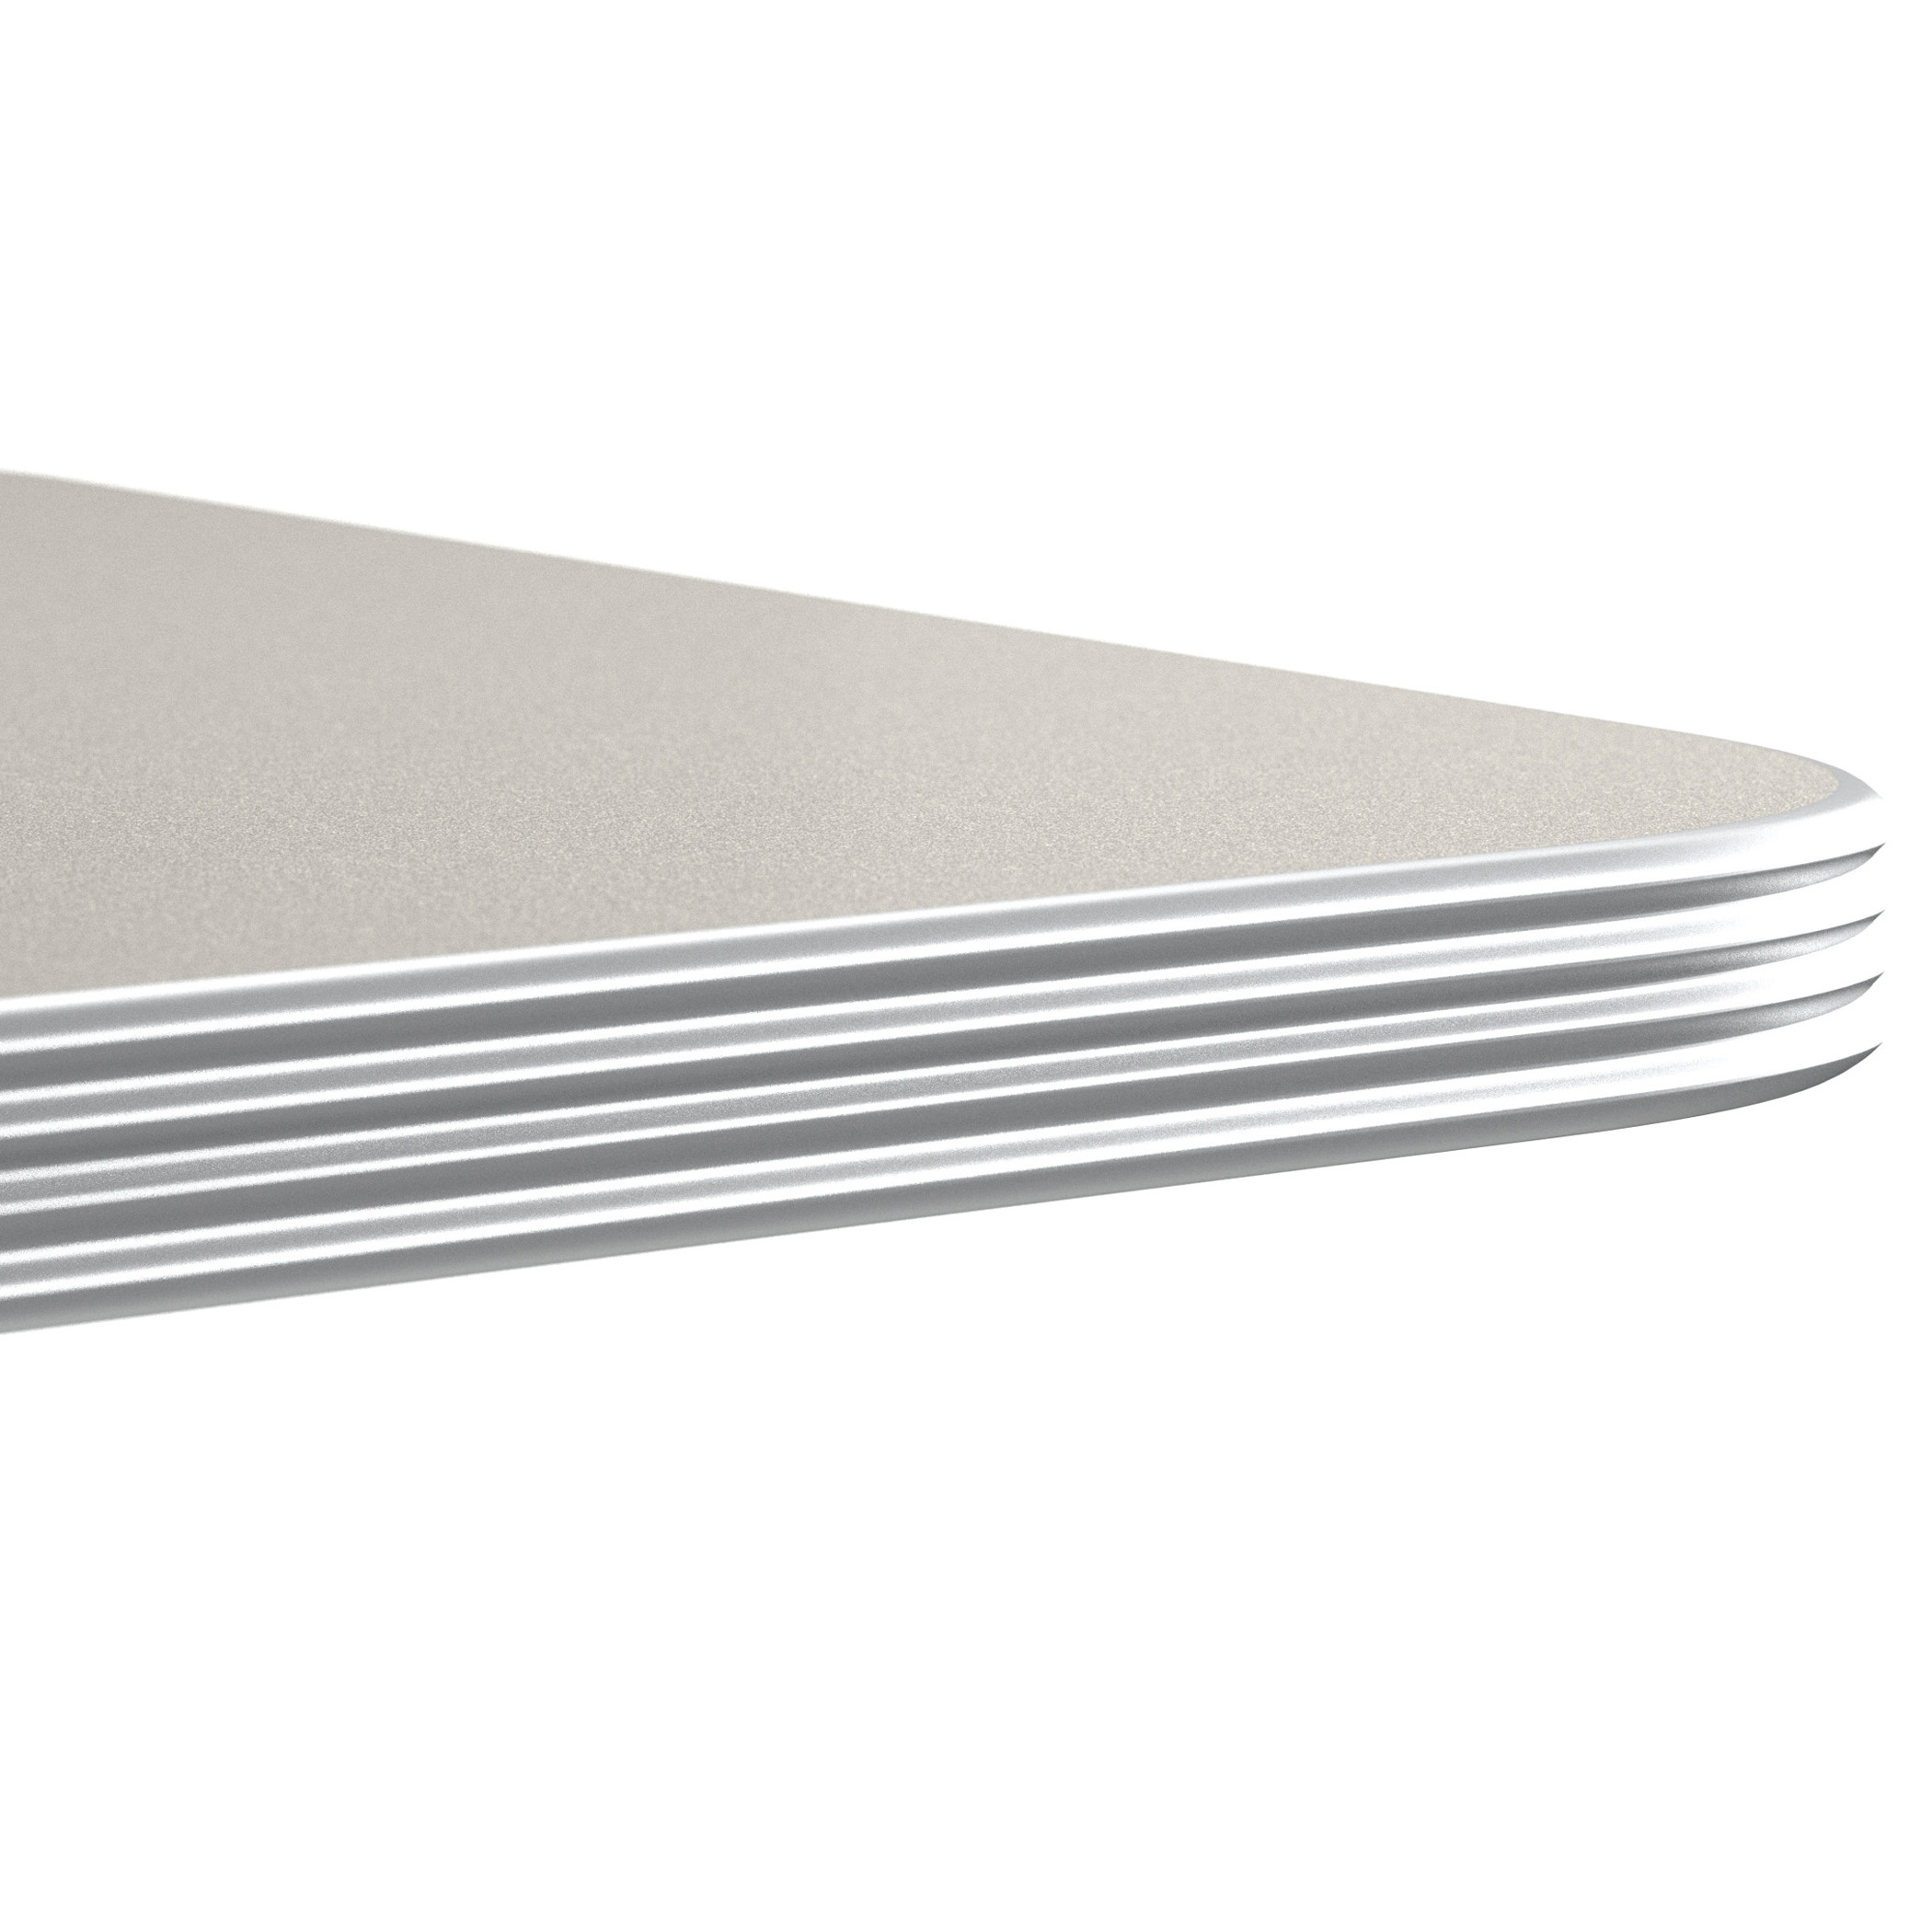 Ae Aluminum Edge Top